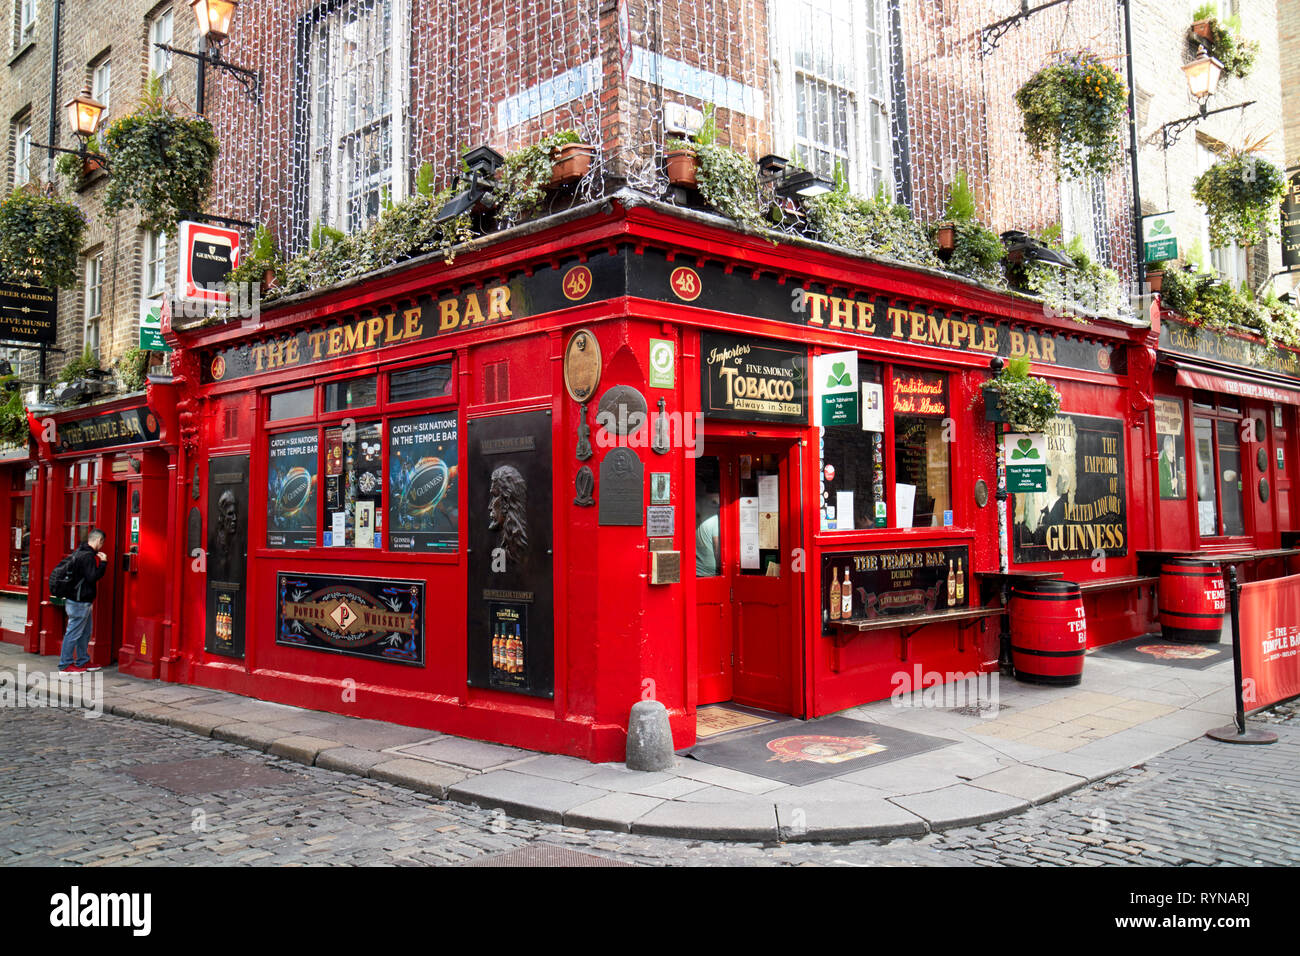 the temple bar pub Dublin Republic of Ireland Europe - Stock Image